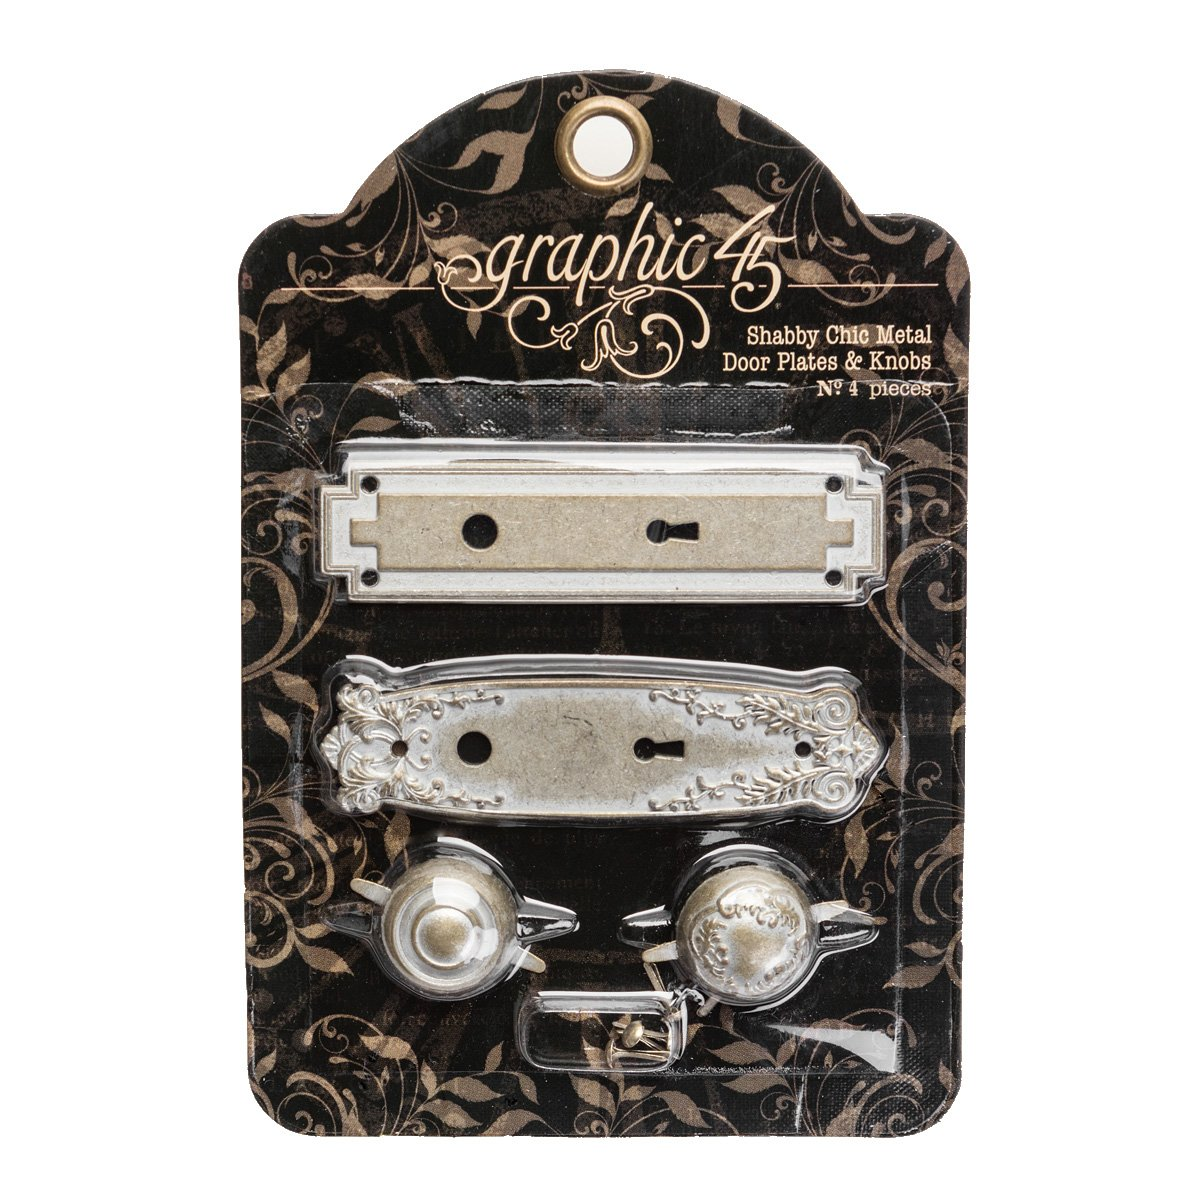 Graphic 45 260619 Staples Metal Door Plates W/Knobs 2 Sets, Shabby Chic Notions 4501296